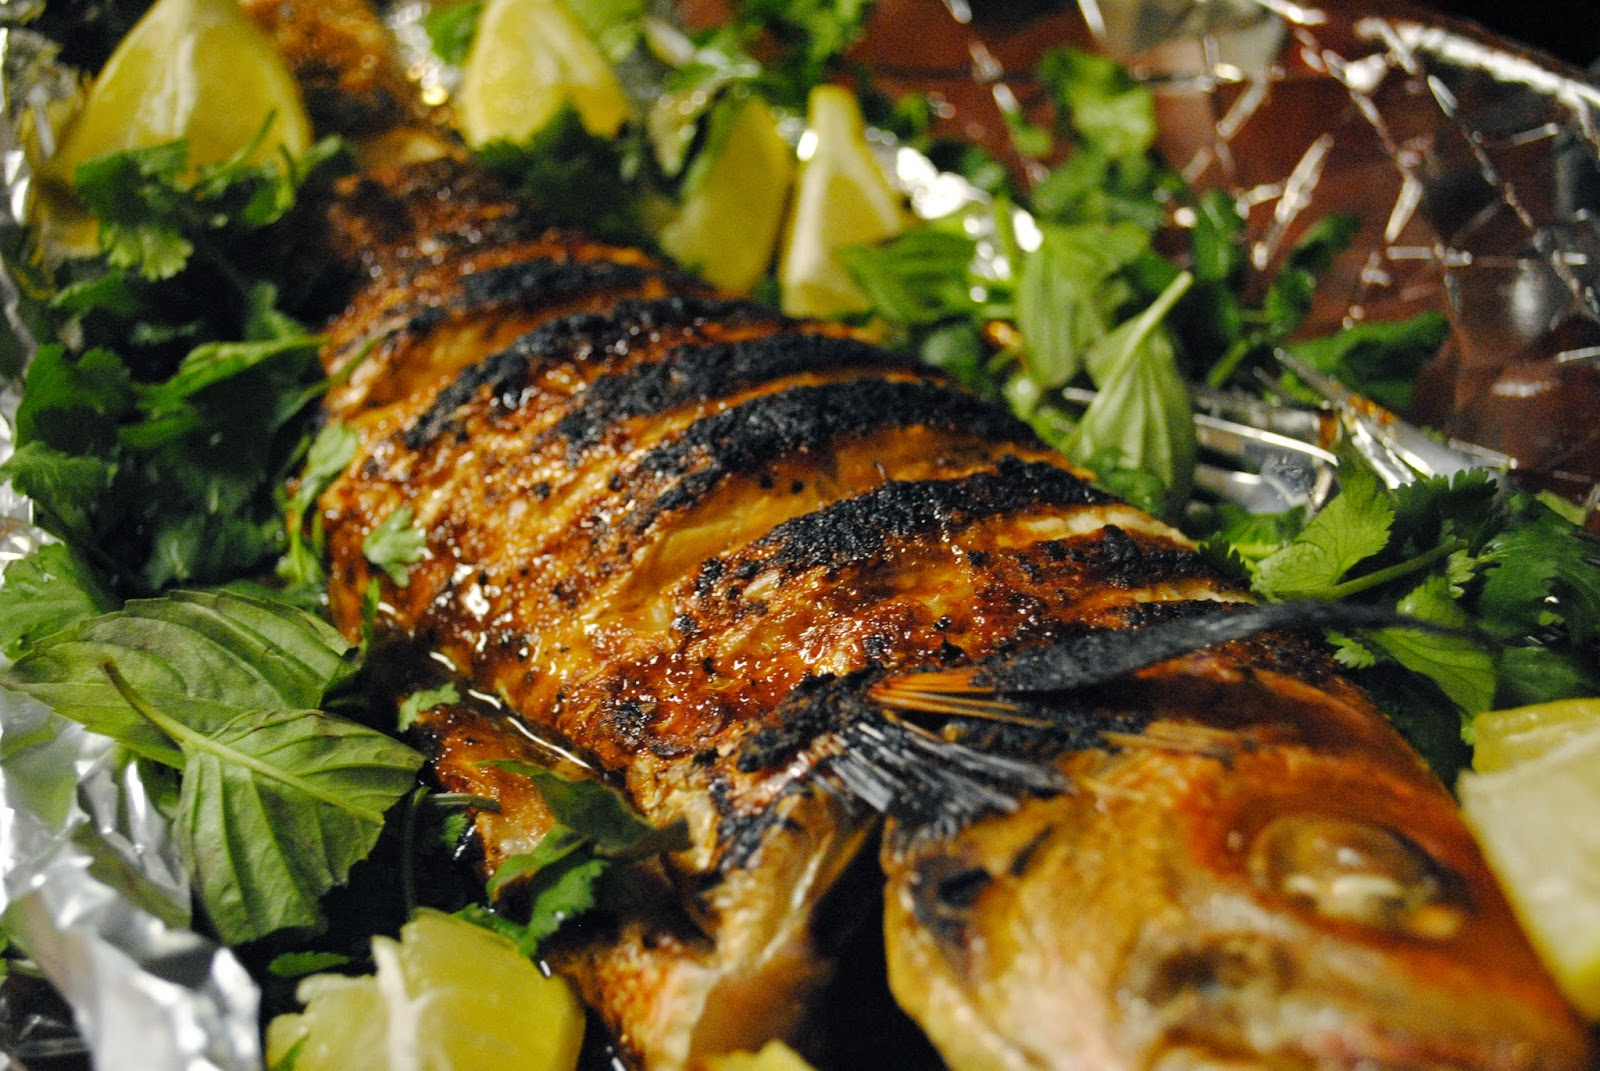 ����� ����� ������ ������ cooked-whole-fish-20